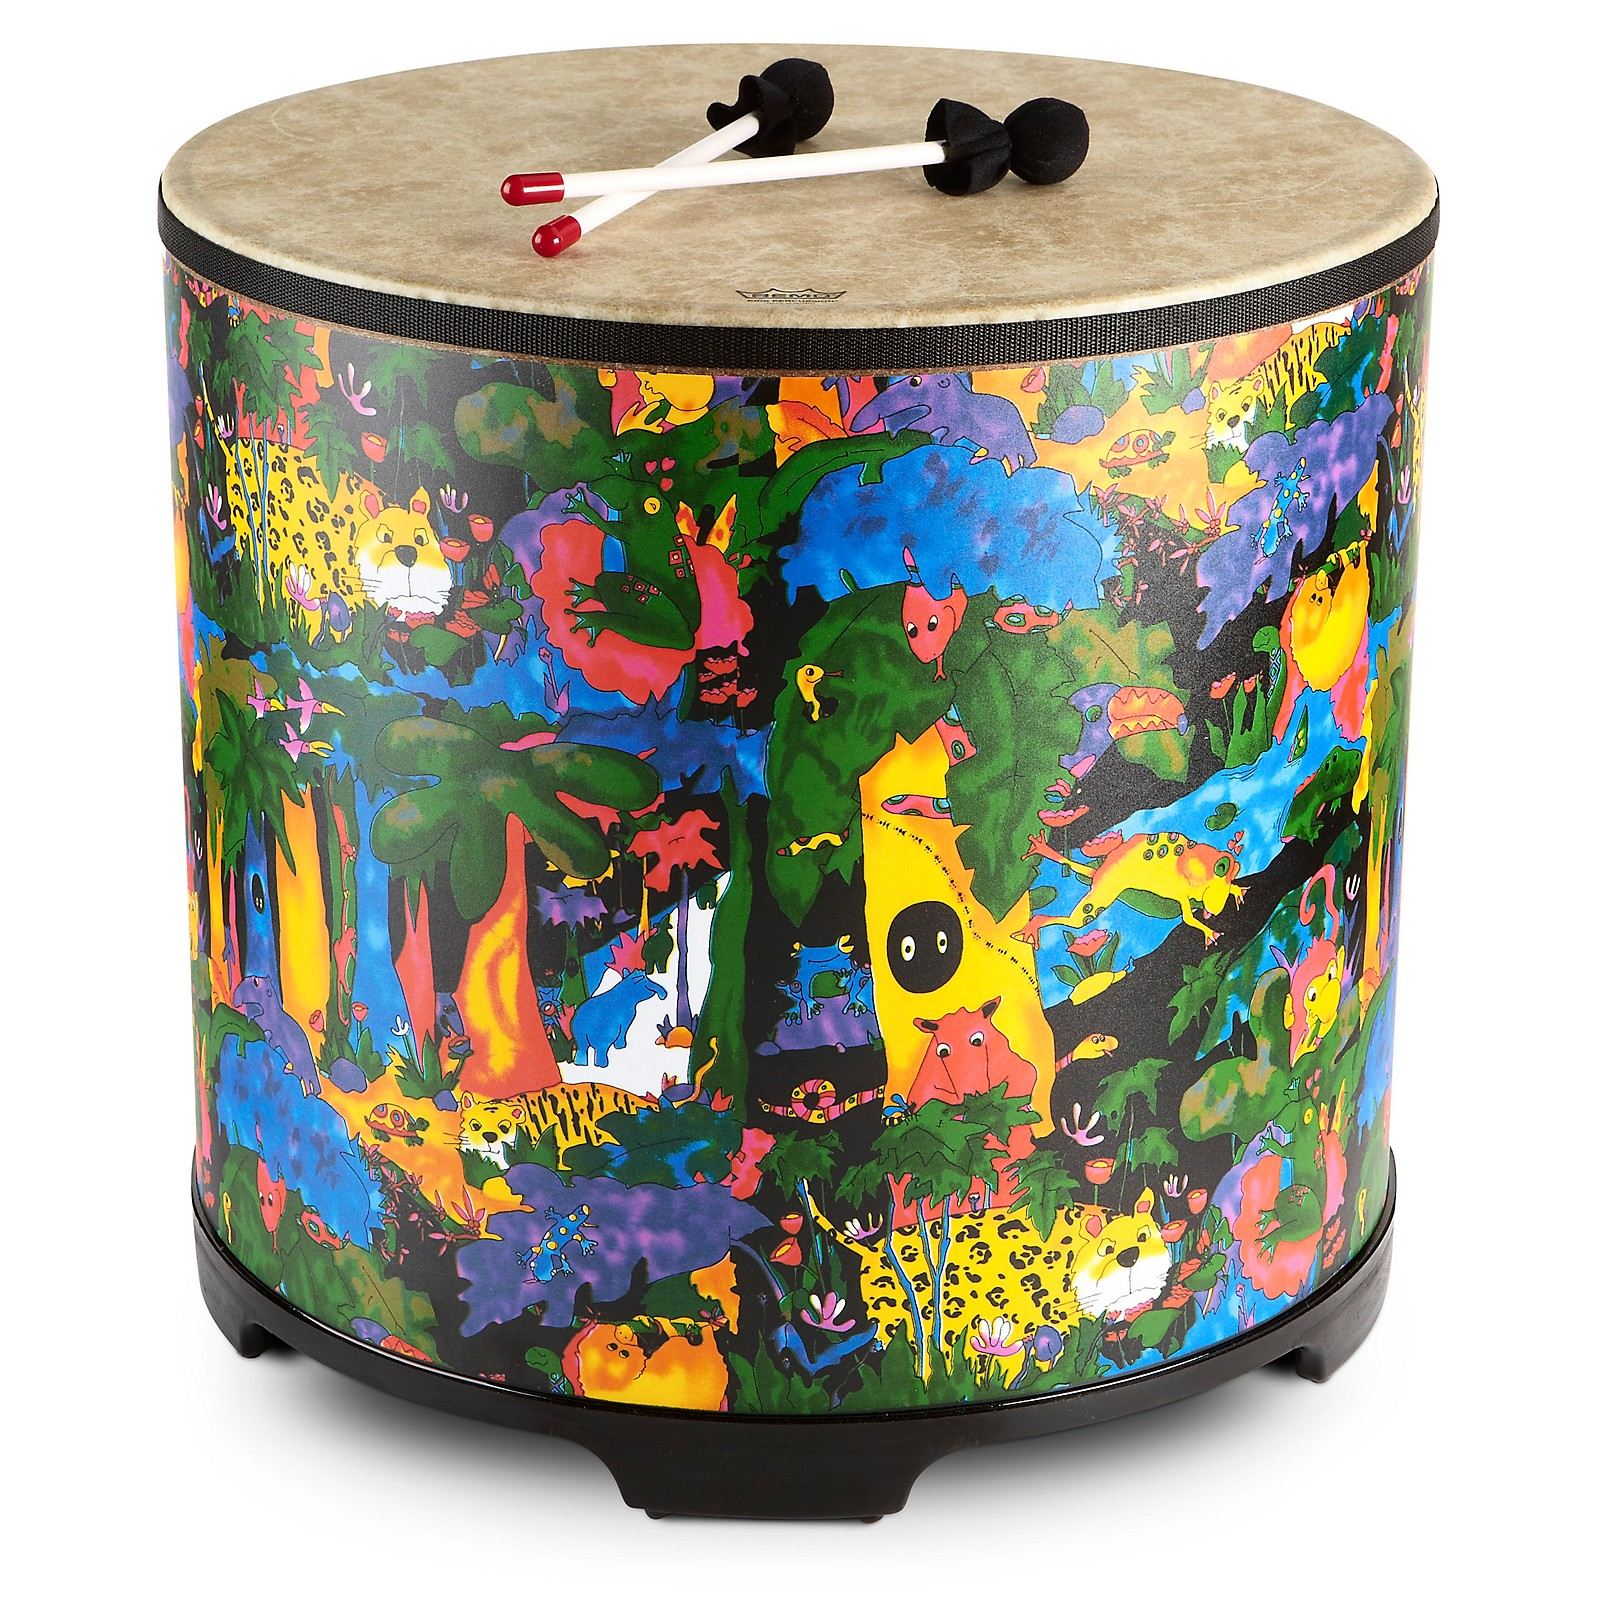 Remo Kids Percussion Gathering Drum